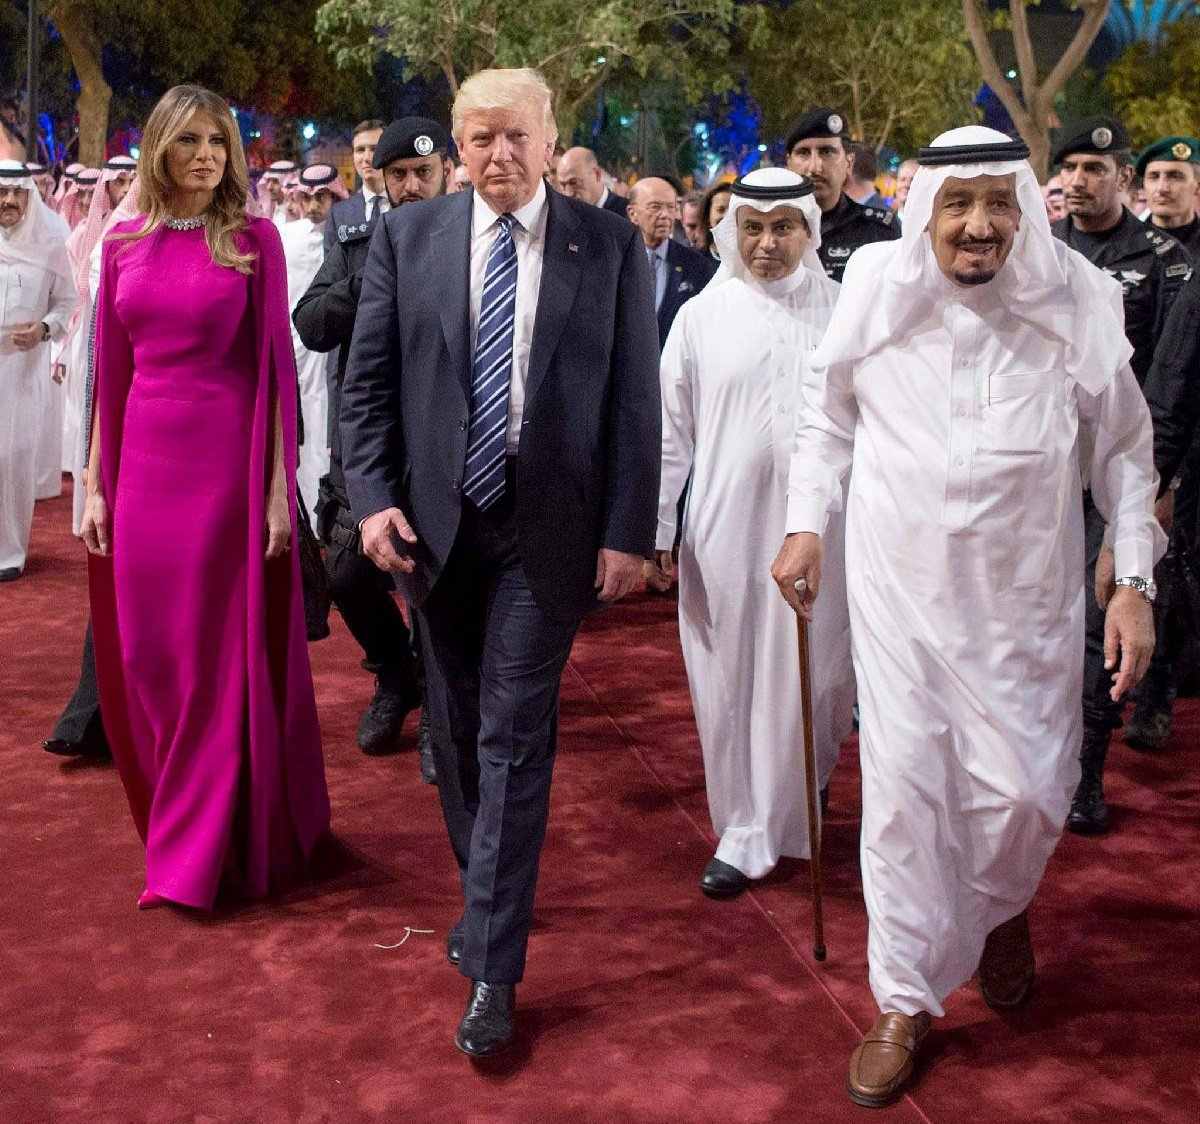 Riyadh (Saudi Arabia), 20/05/2017.- A handout photo made available by the Saudi Press Agency shows King of Saudi Arabia Salman bin Abdulaziz Al Saud (R) with US President Donald J. Trump (C) and wife Melania during a welcome ceremony at Murabba Palace, in Riyadh, Saudi Arabia, 20 May 2017. President Trump is on a two-day official visit to Saudi Arabia, the first stop of his first foreign trip since taking office in January 2017. (Arabia Saudita, Estados Unidos) EFE/EPA/SAUDI PRESS AGENCY HANDOUT HANDOUT EDITORIAL USE ONLY/NO SALES